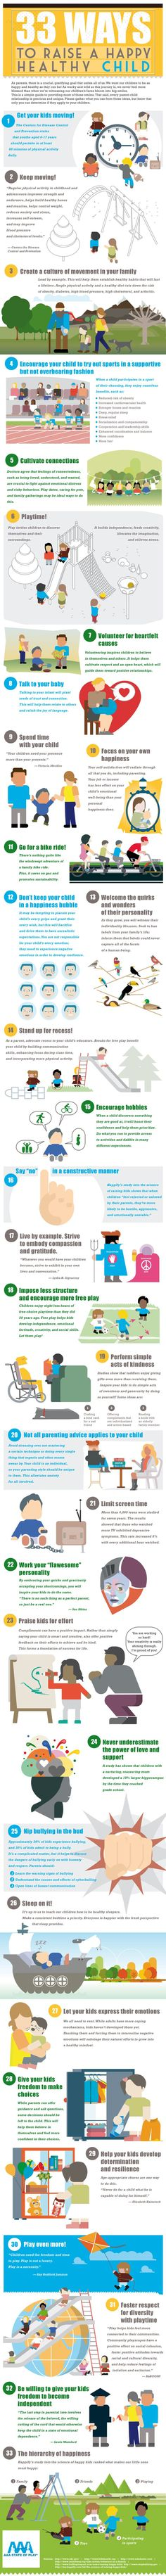 33 Ways to Raise a Happy Health Child - http://AAAStateofPlay.com - Infographic